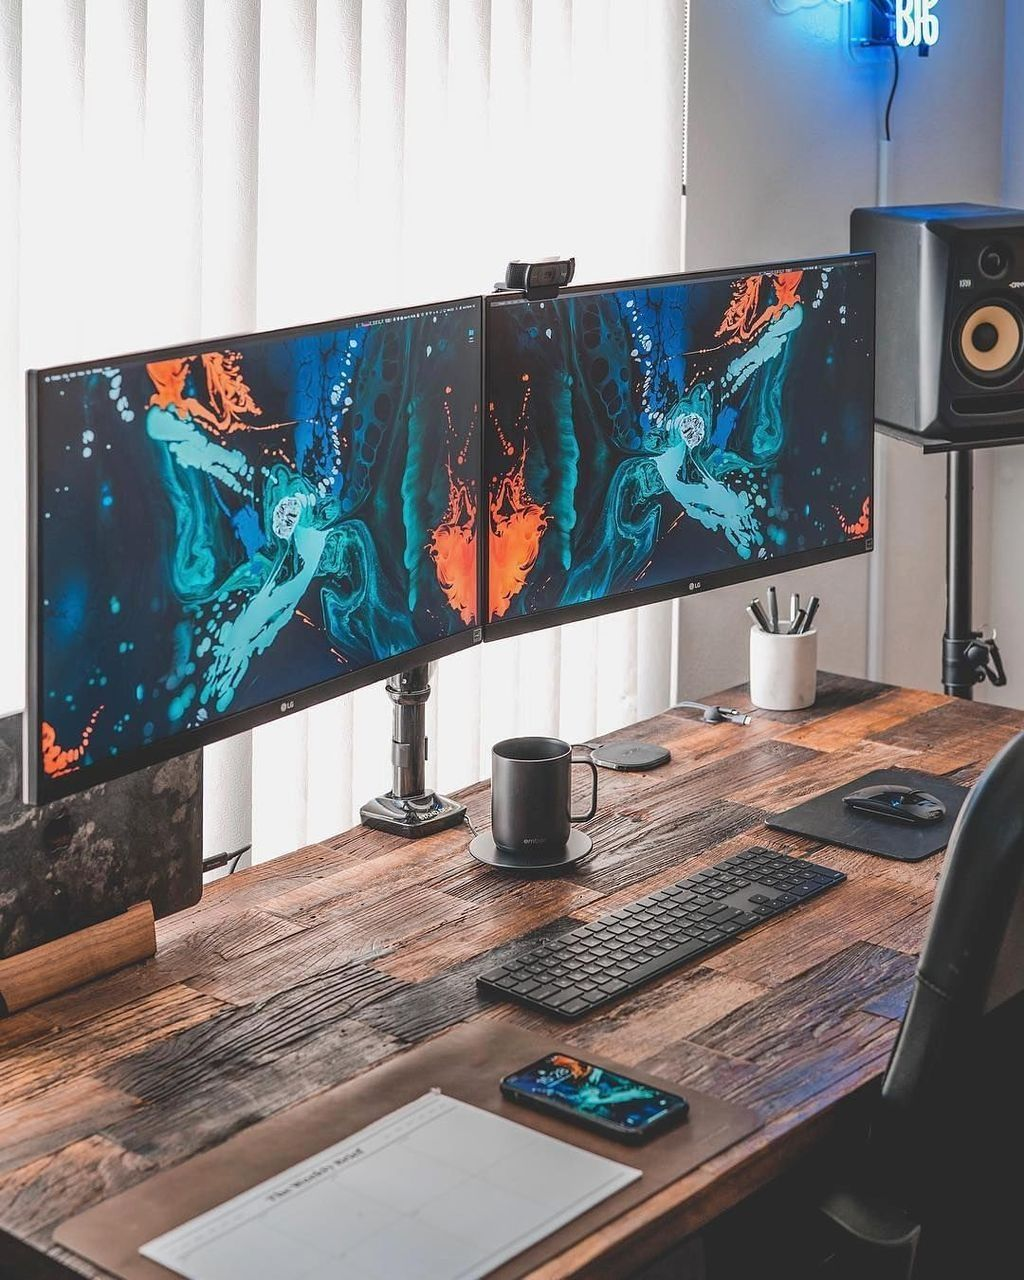 37 The Best Gaming Desk Decor Ideas With Computer Setup Gamingdesk 37 The Best Gaming Desk Decor Ideas Wit Home Office Setup Workspace Design Game Room Design